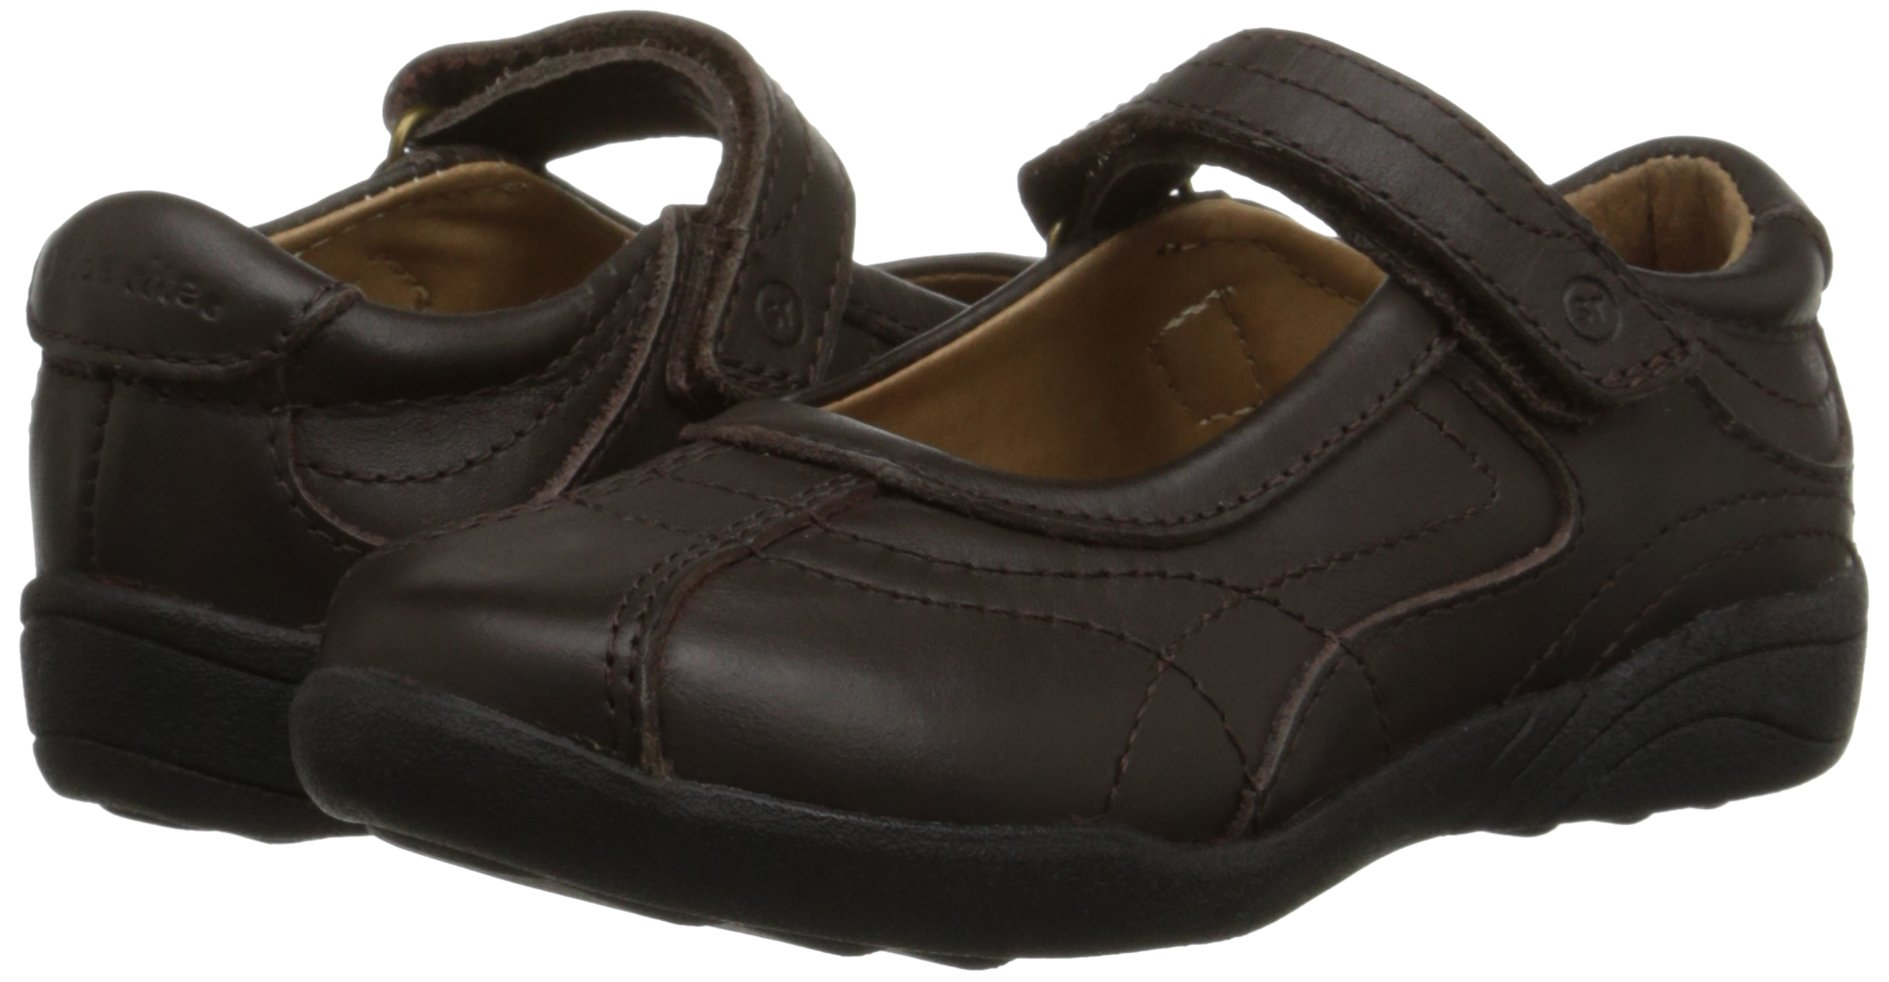 Stride Rite Claire Mary Jane (Toddler/Little Kid/Big Kid),Brown,13 M US Little Kid by Stride Rite (Image #5)